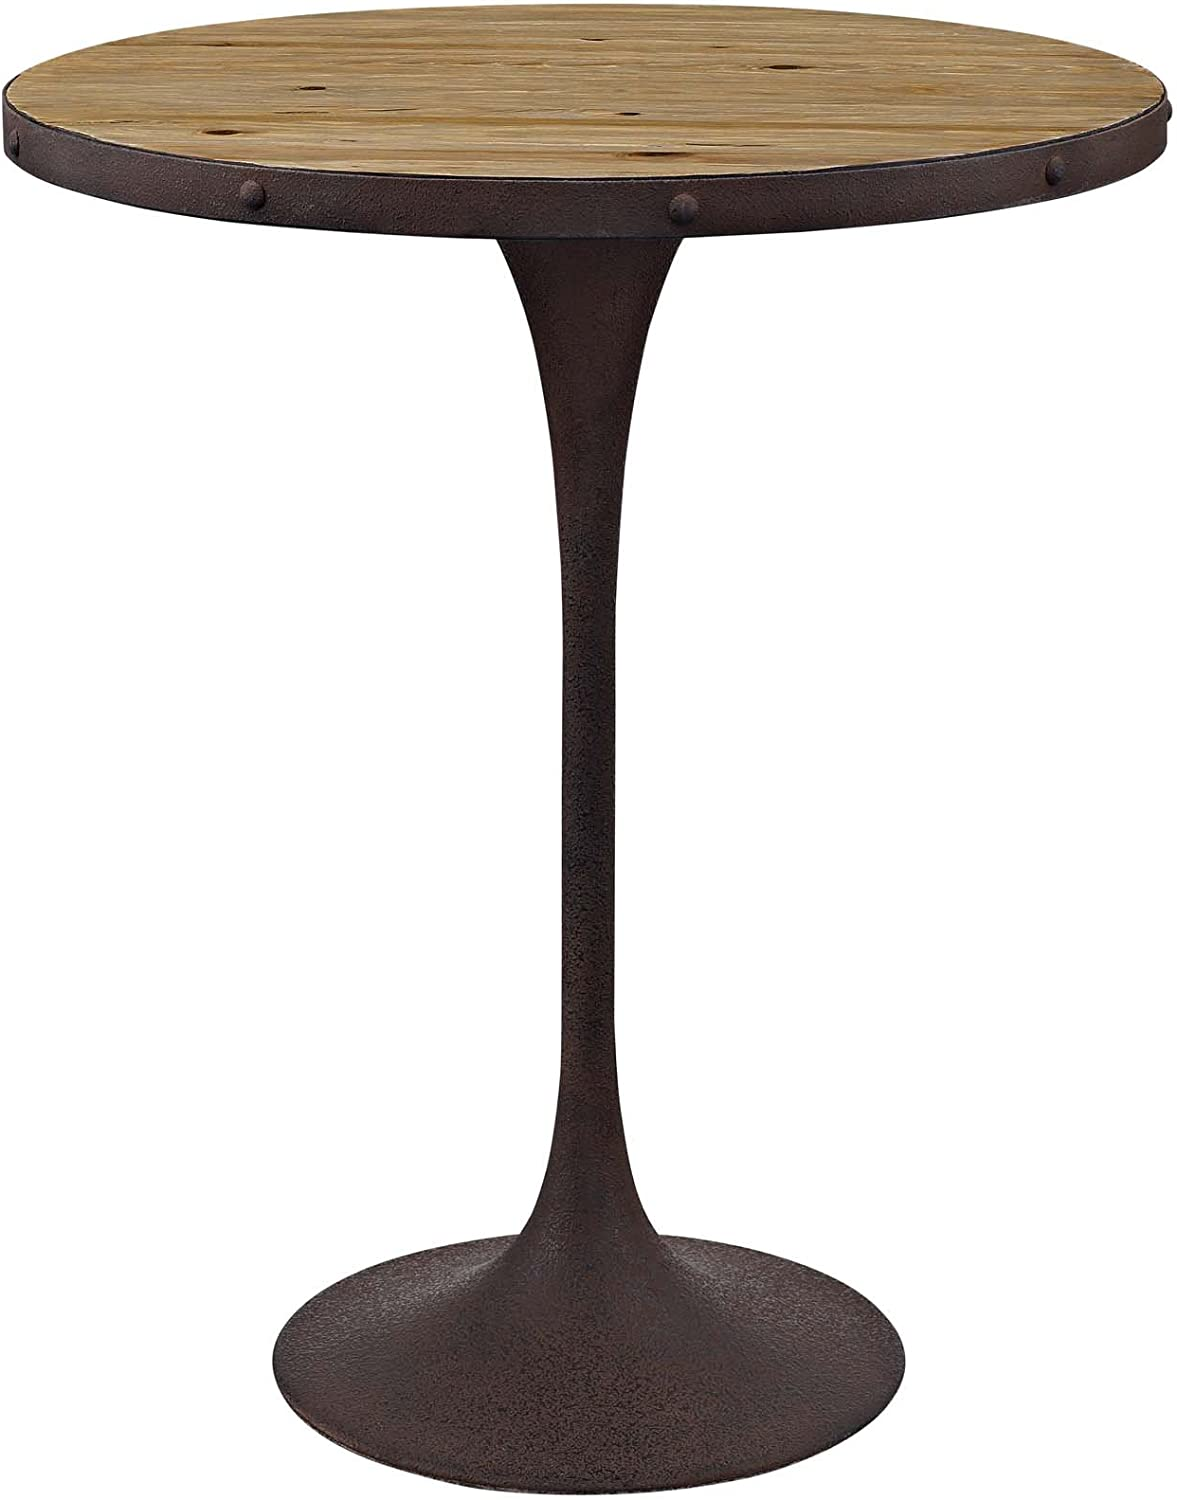 """Modway Drive 36"""" Rustic Modern Farmhouse Dining Table with Round Pine Brown Wood Top and Iron Base in Brown"""